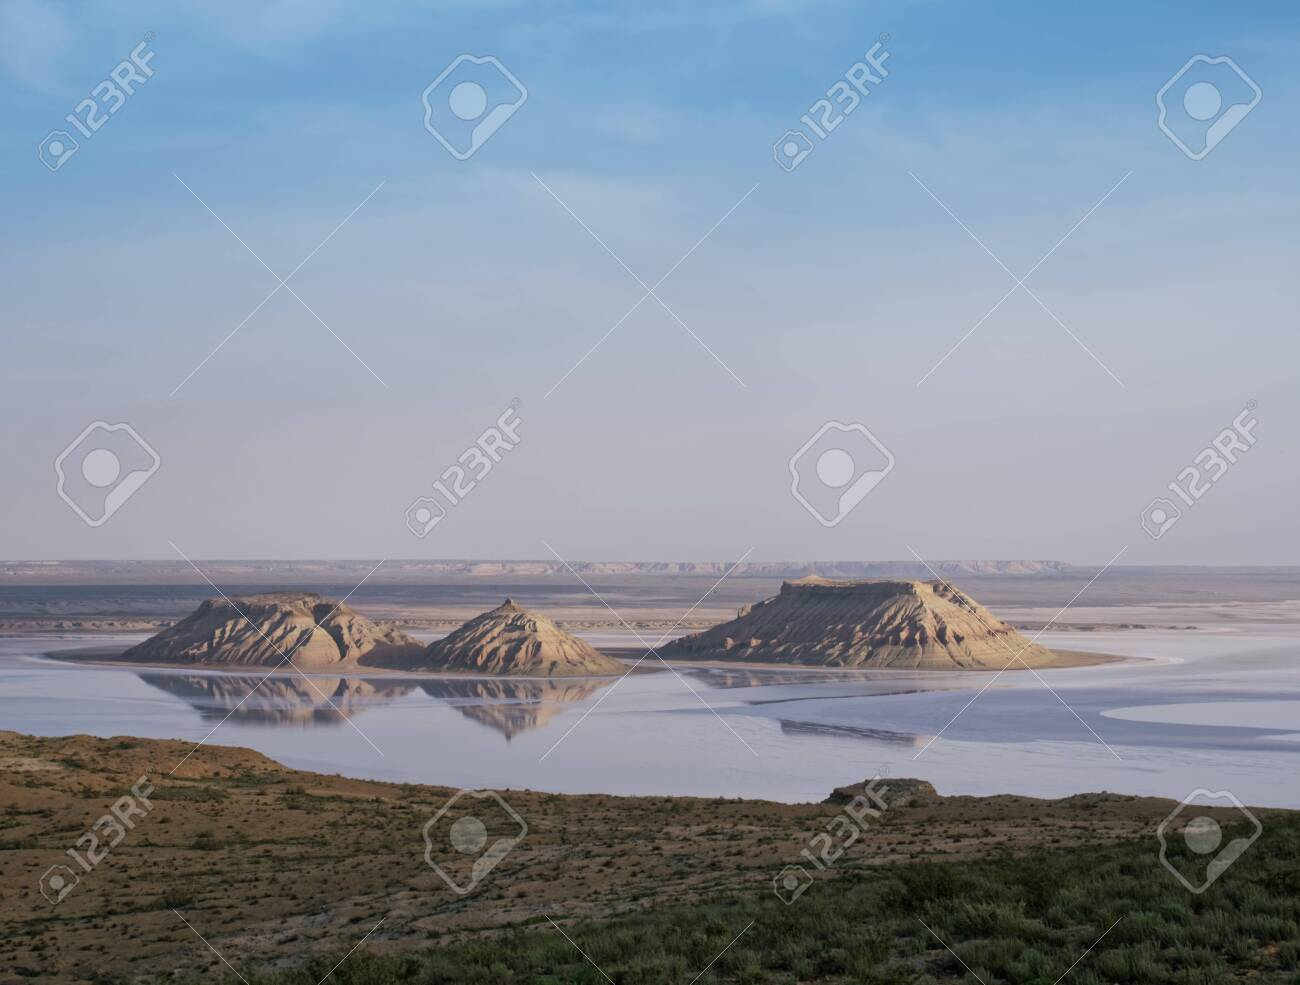 """Mountains, rocks """"Three brothers"""" in the salt marsh East. - 142655251"""